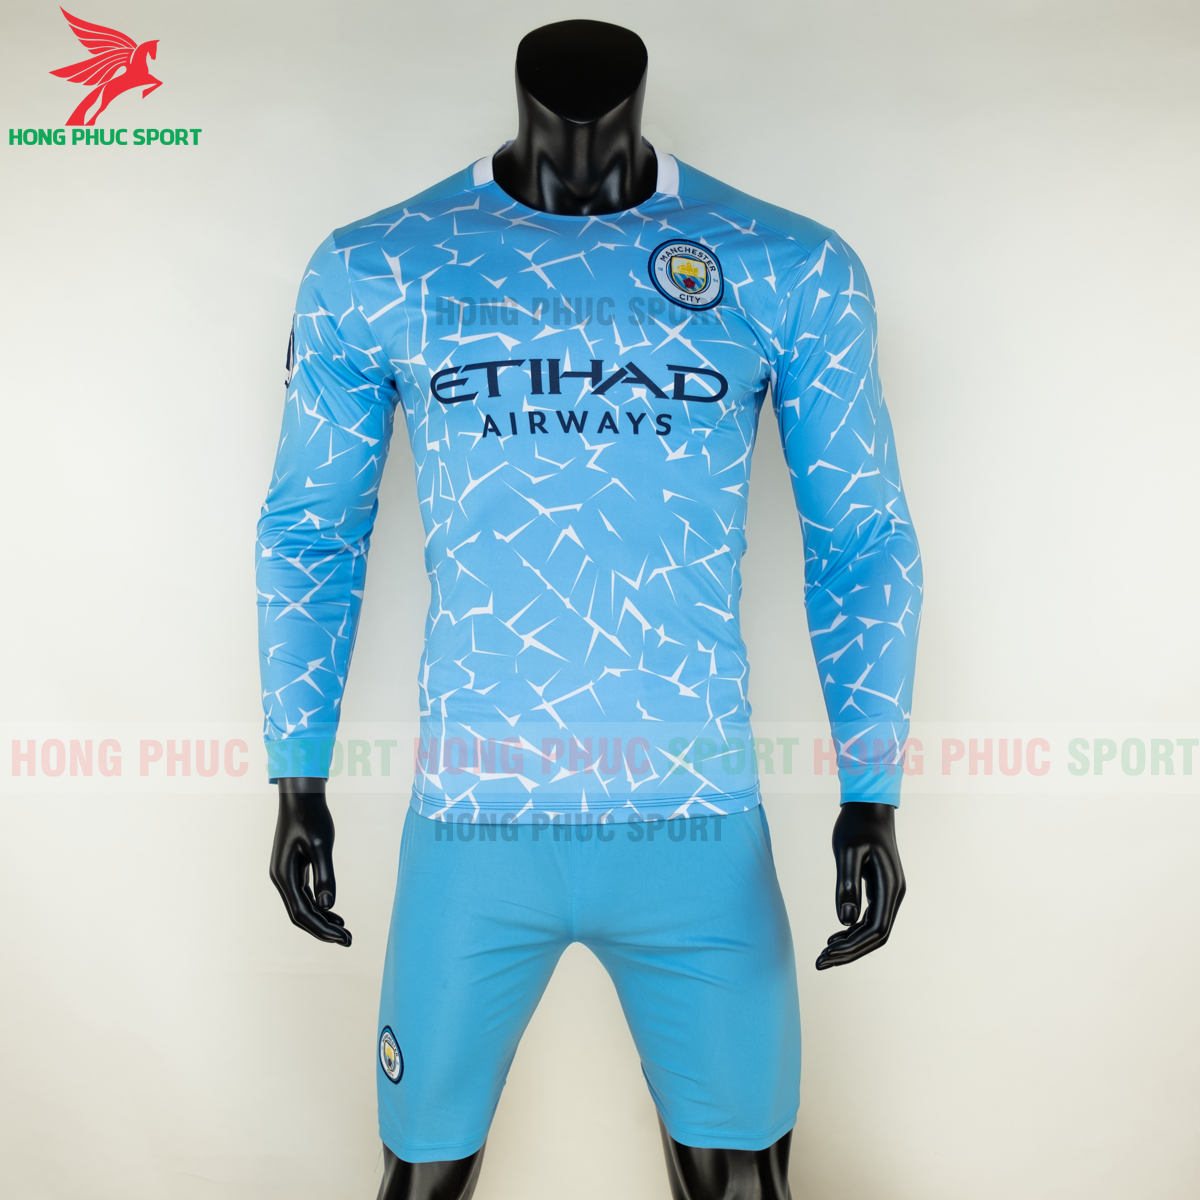 https://cdn.hongphucsport.com/unsafe/s4.shopbay.vn/files/285/ao-dai-tay-manchester-city-2020-san-nha-2-5f8fdbde16dea.png